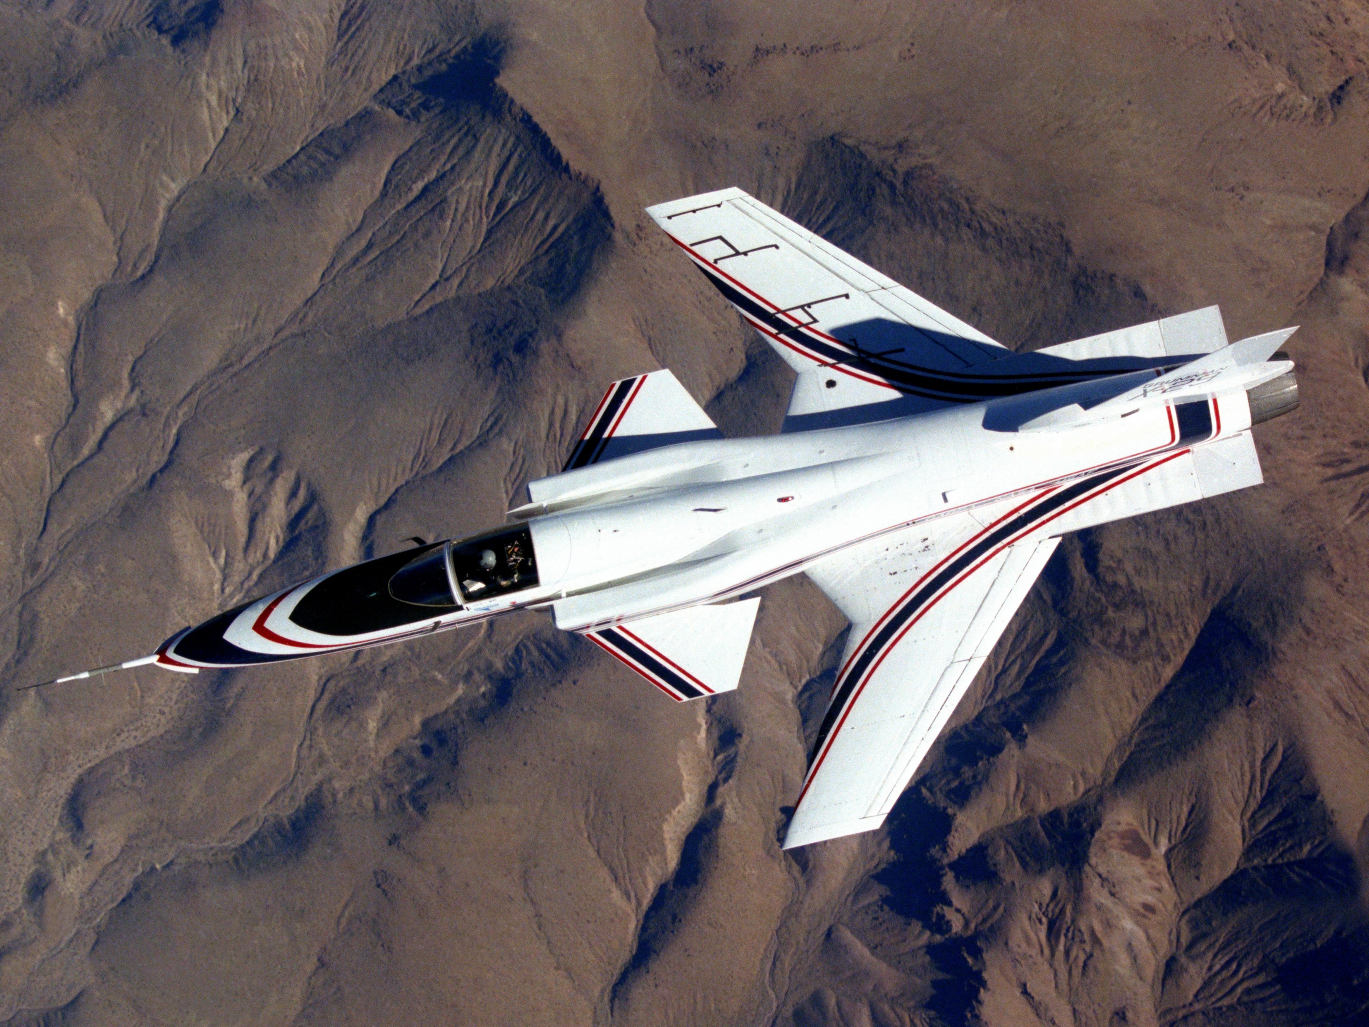 X-29 Forward Swept Wing Jet